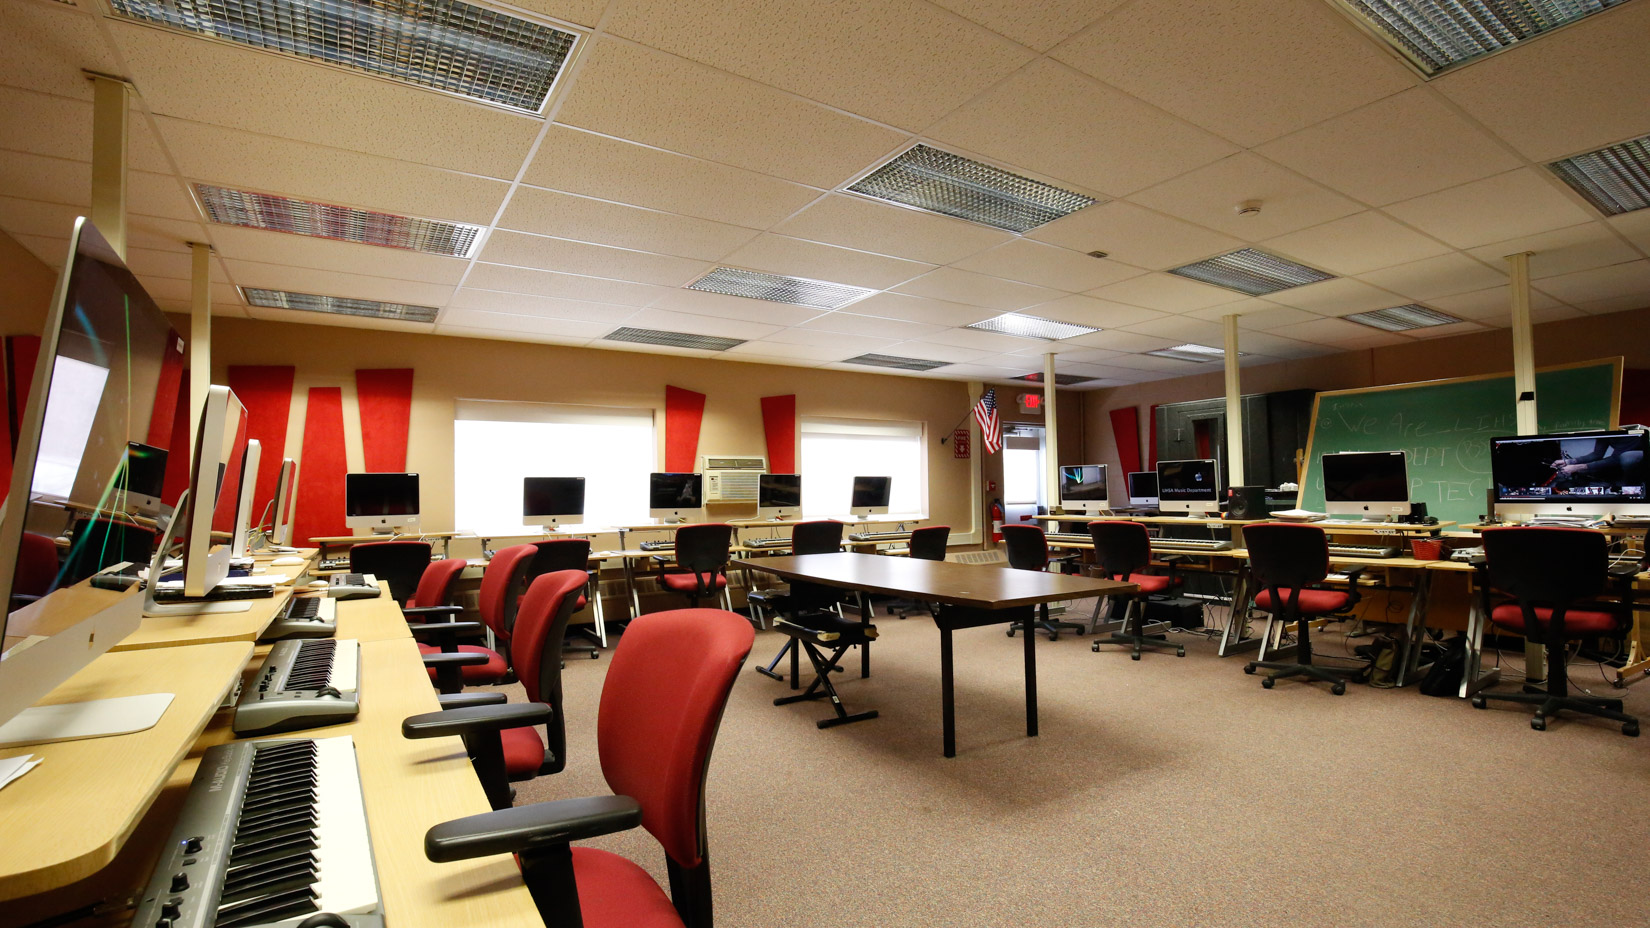 Computer lab with rolling chairs and desks and computers